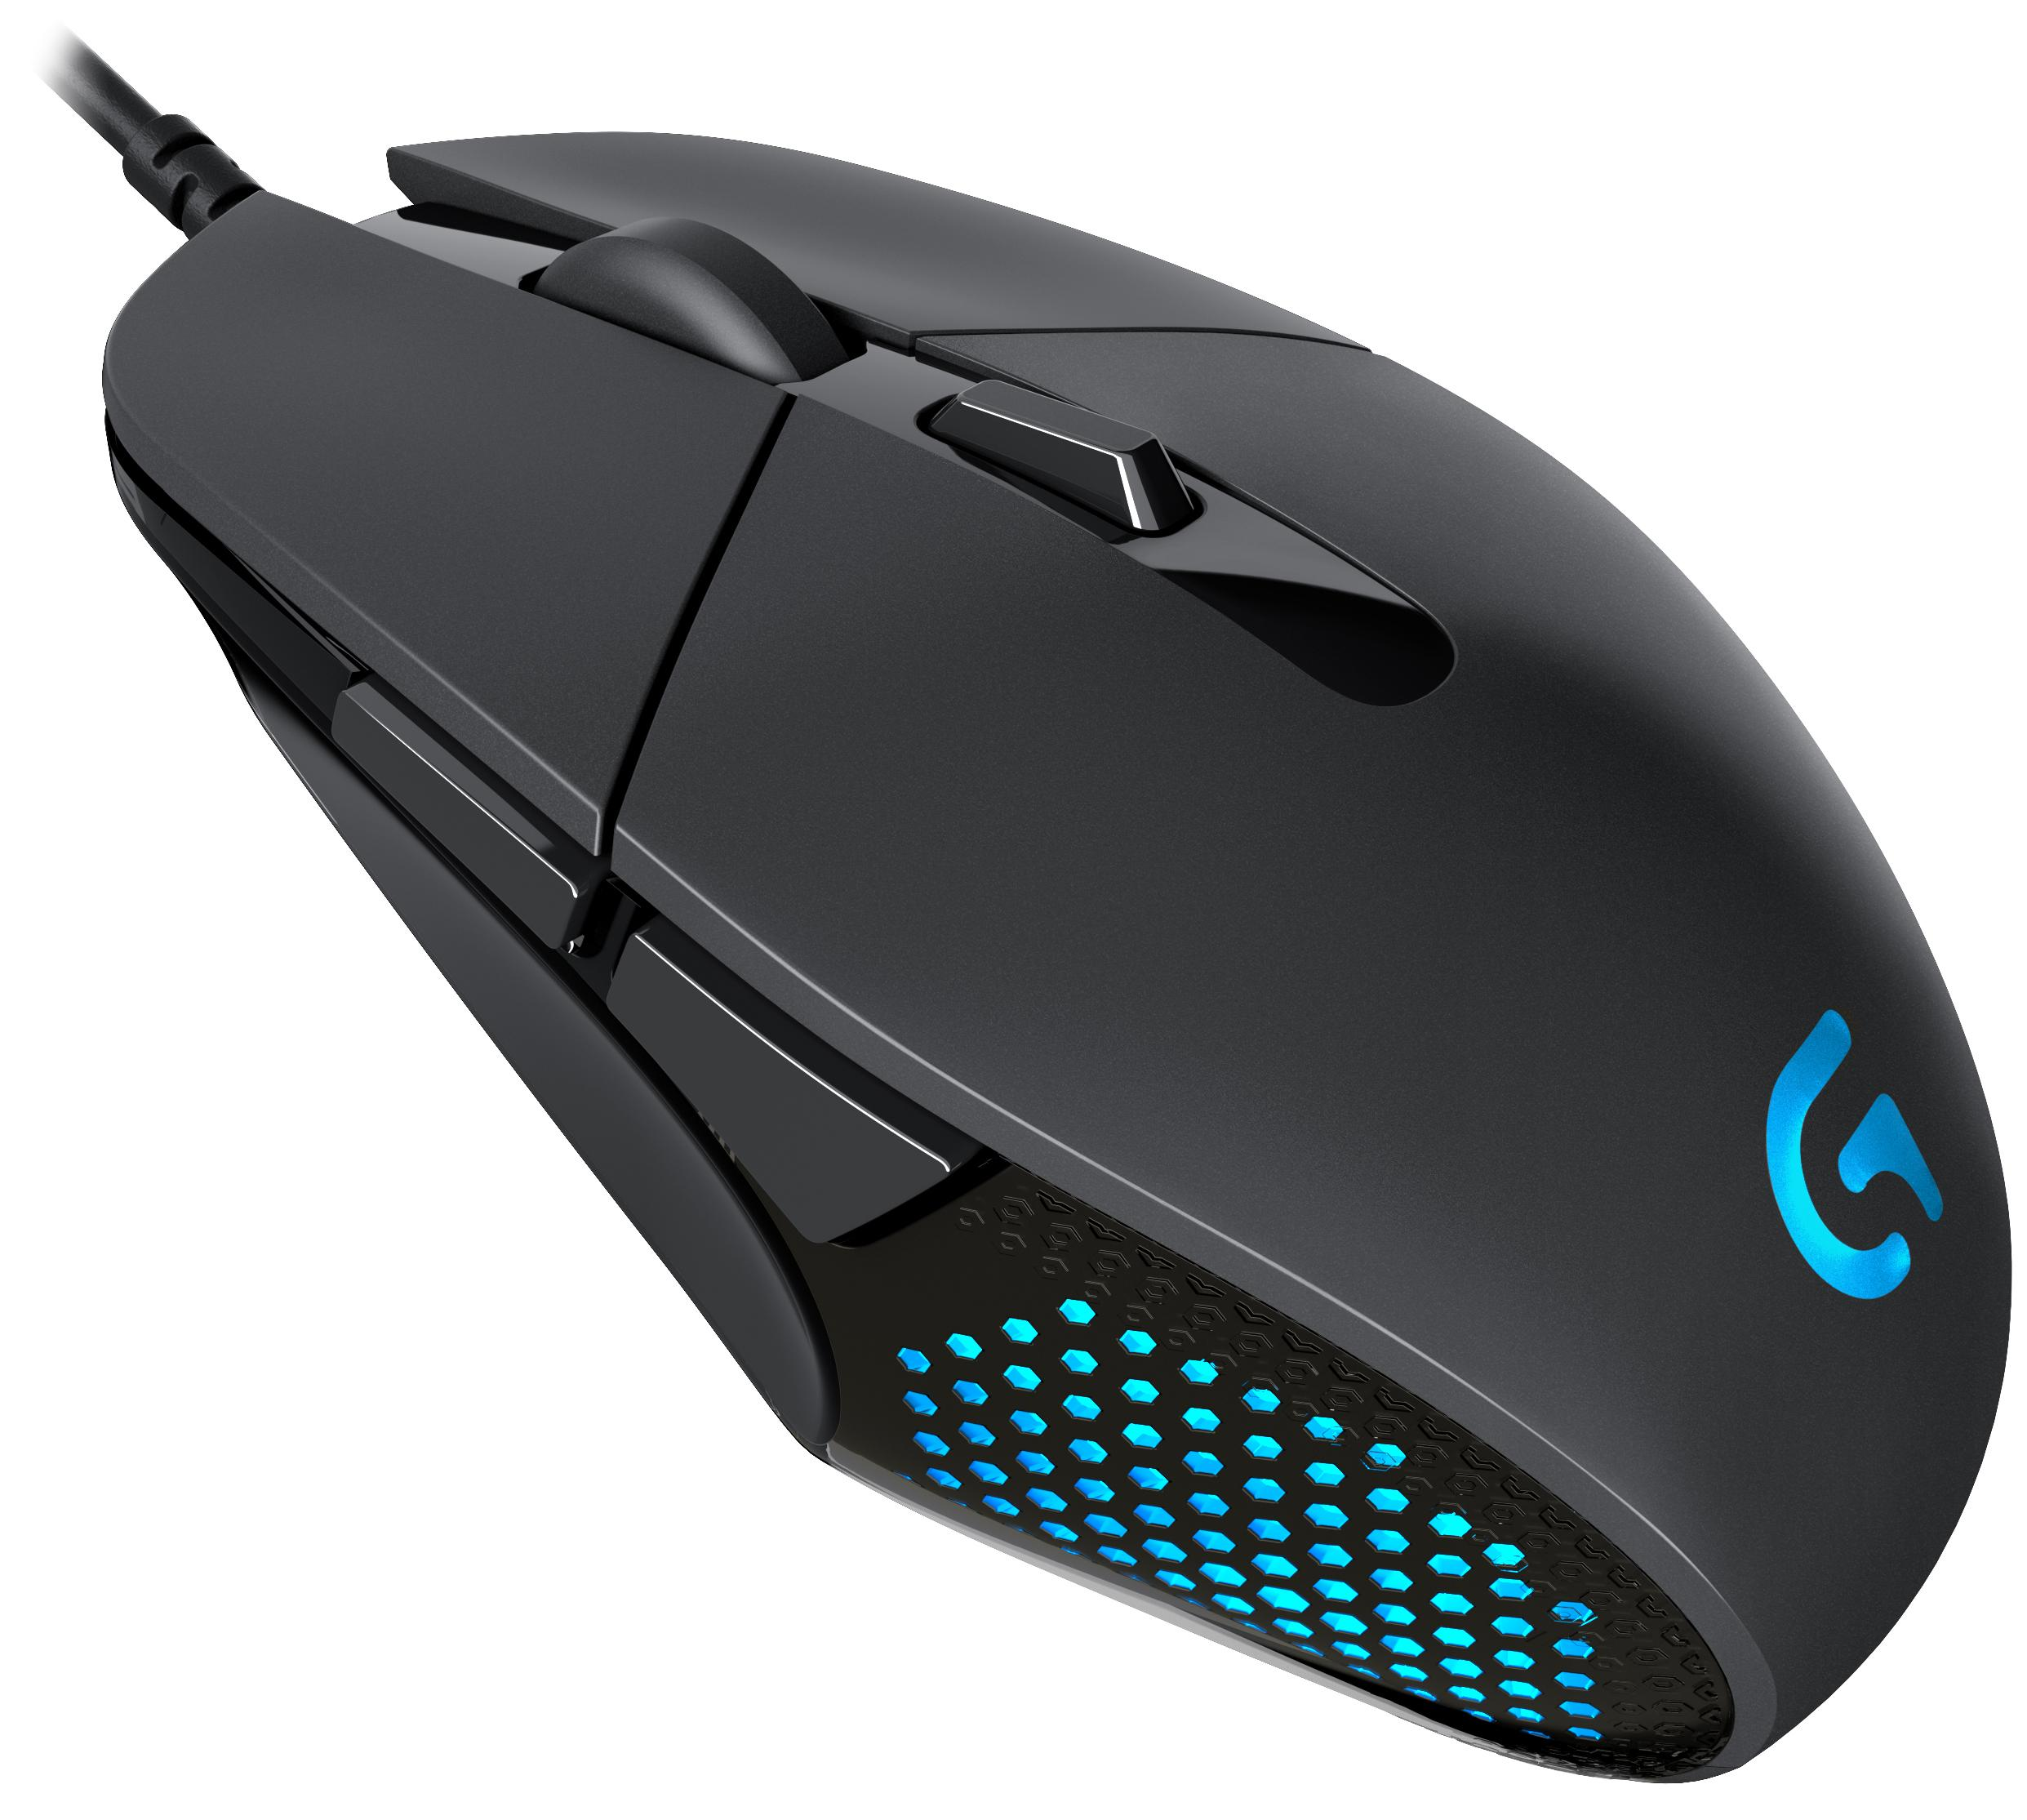 G302 Daedalus Prime MOBA Gaming Mouse: Computers & Accessories